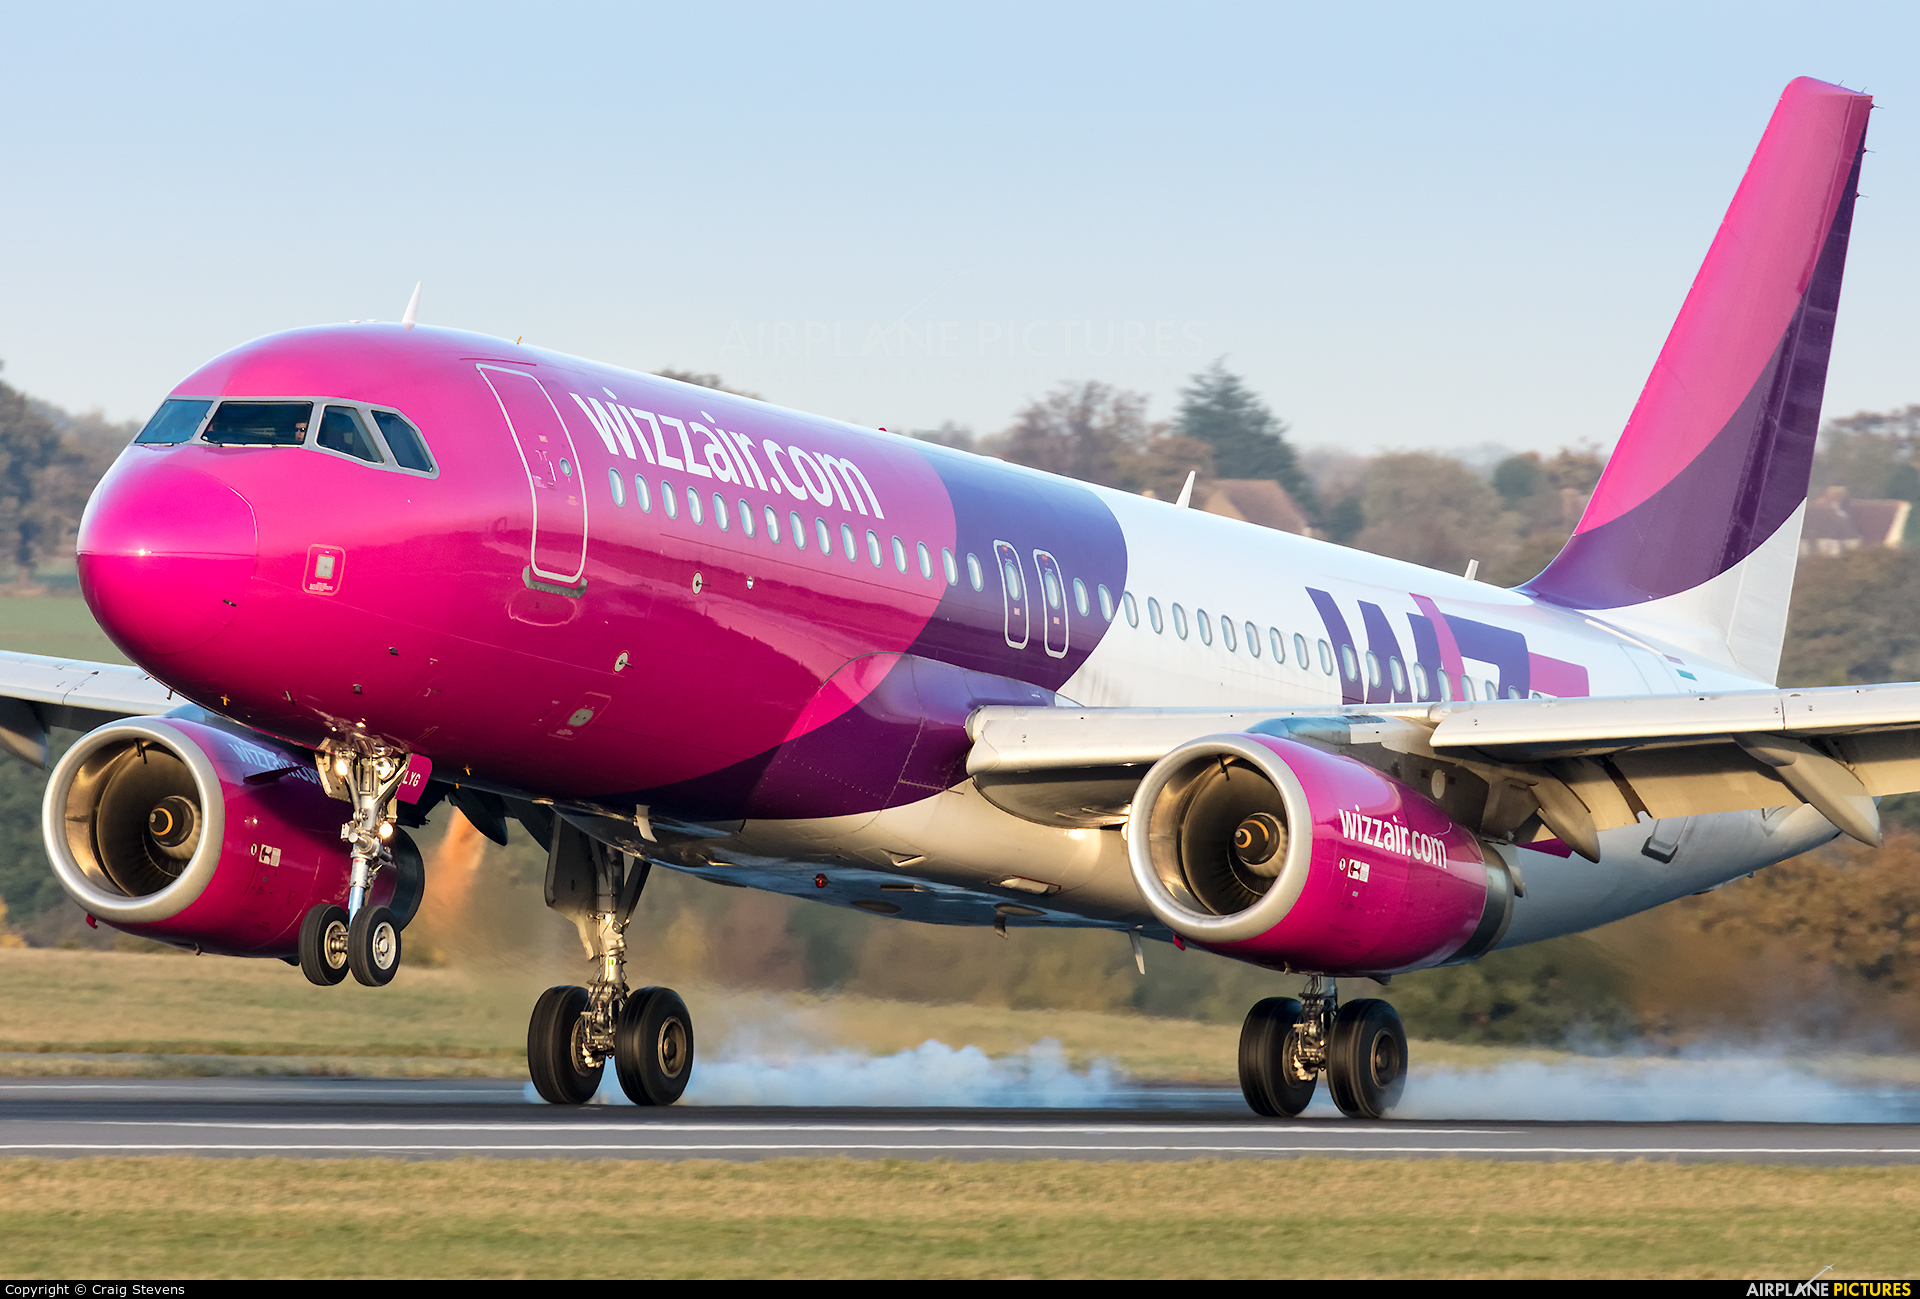 Wizz Air HA-LYG aircraft at London - Luton